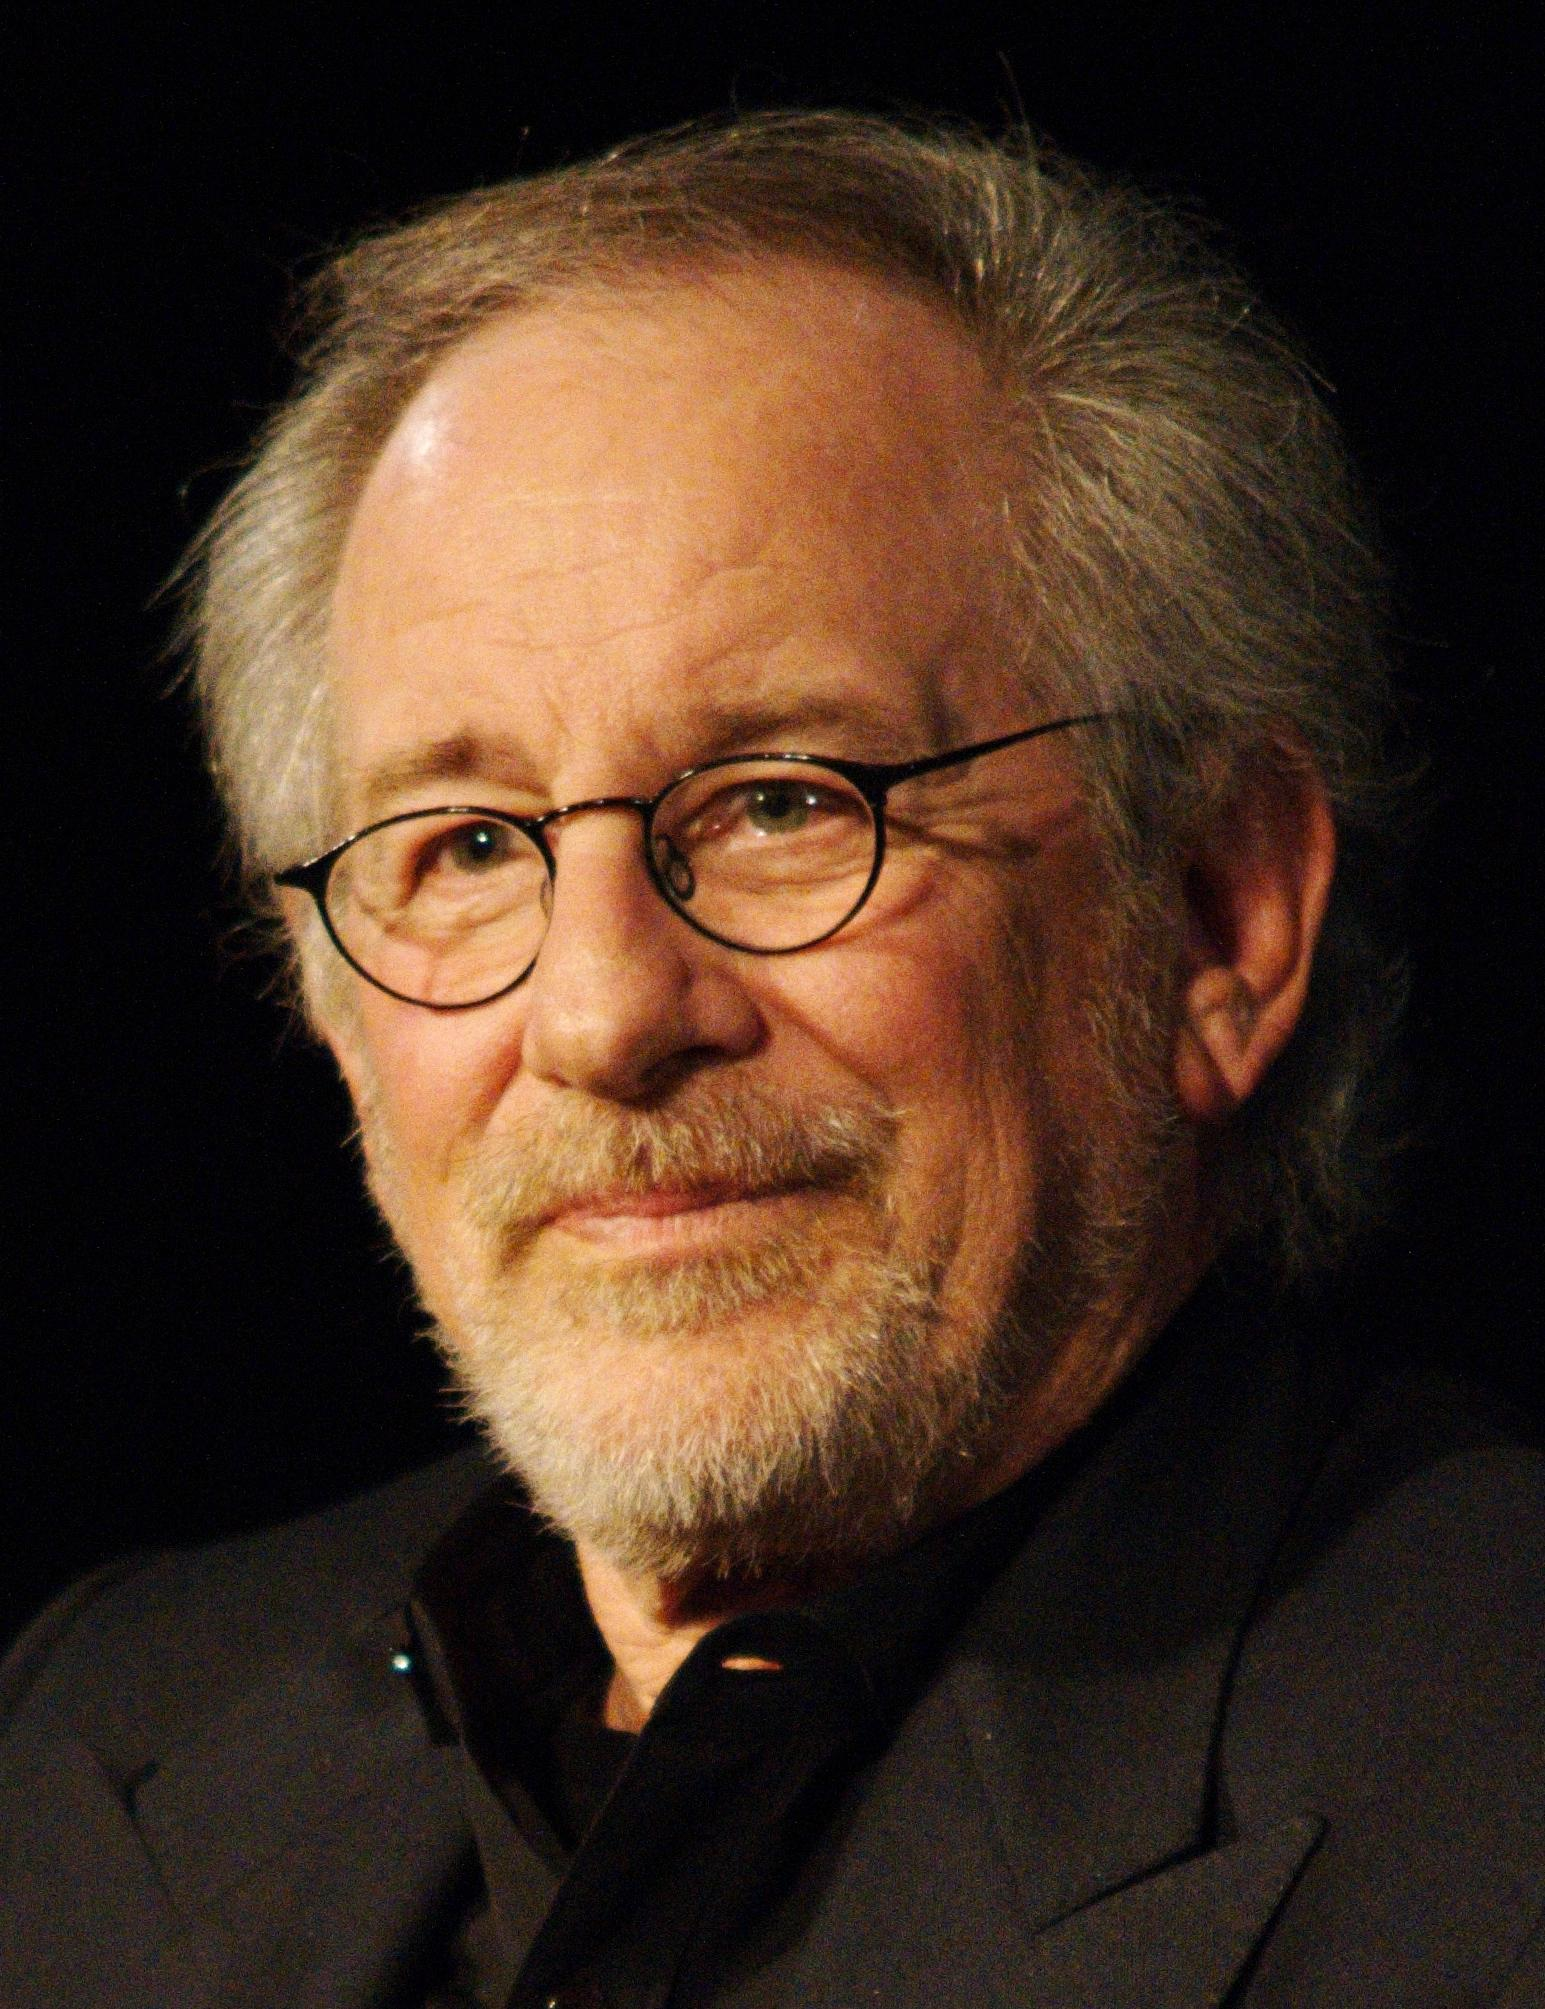 Spielberg at his masterclass at the [[Cinémathèque Française]] in January 2012